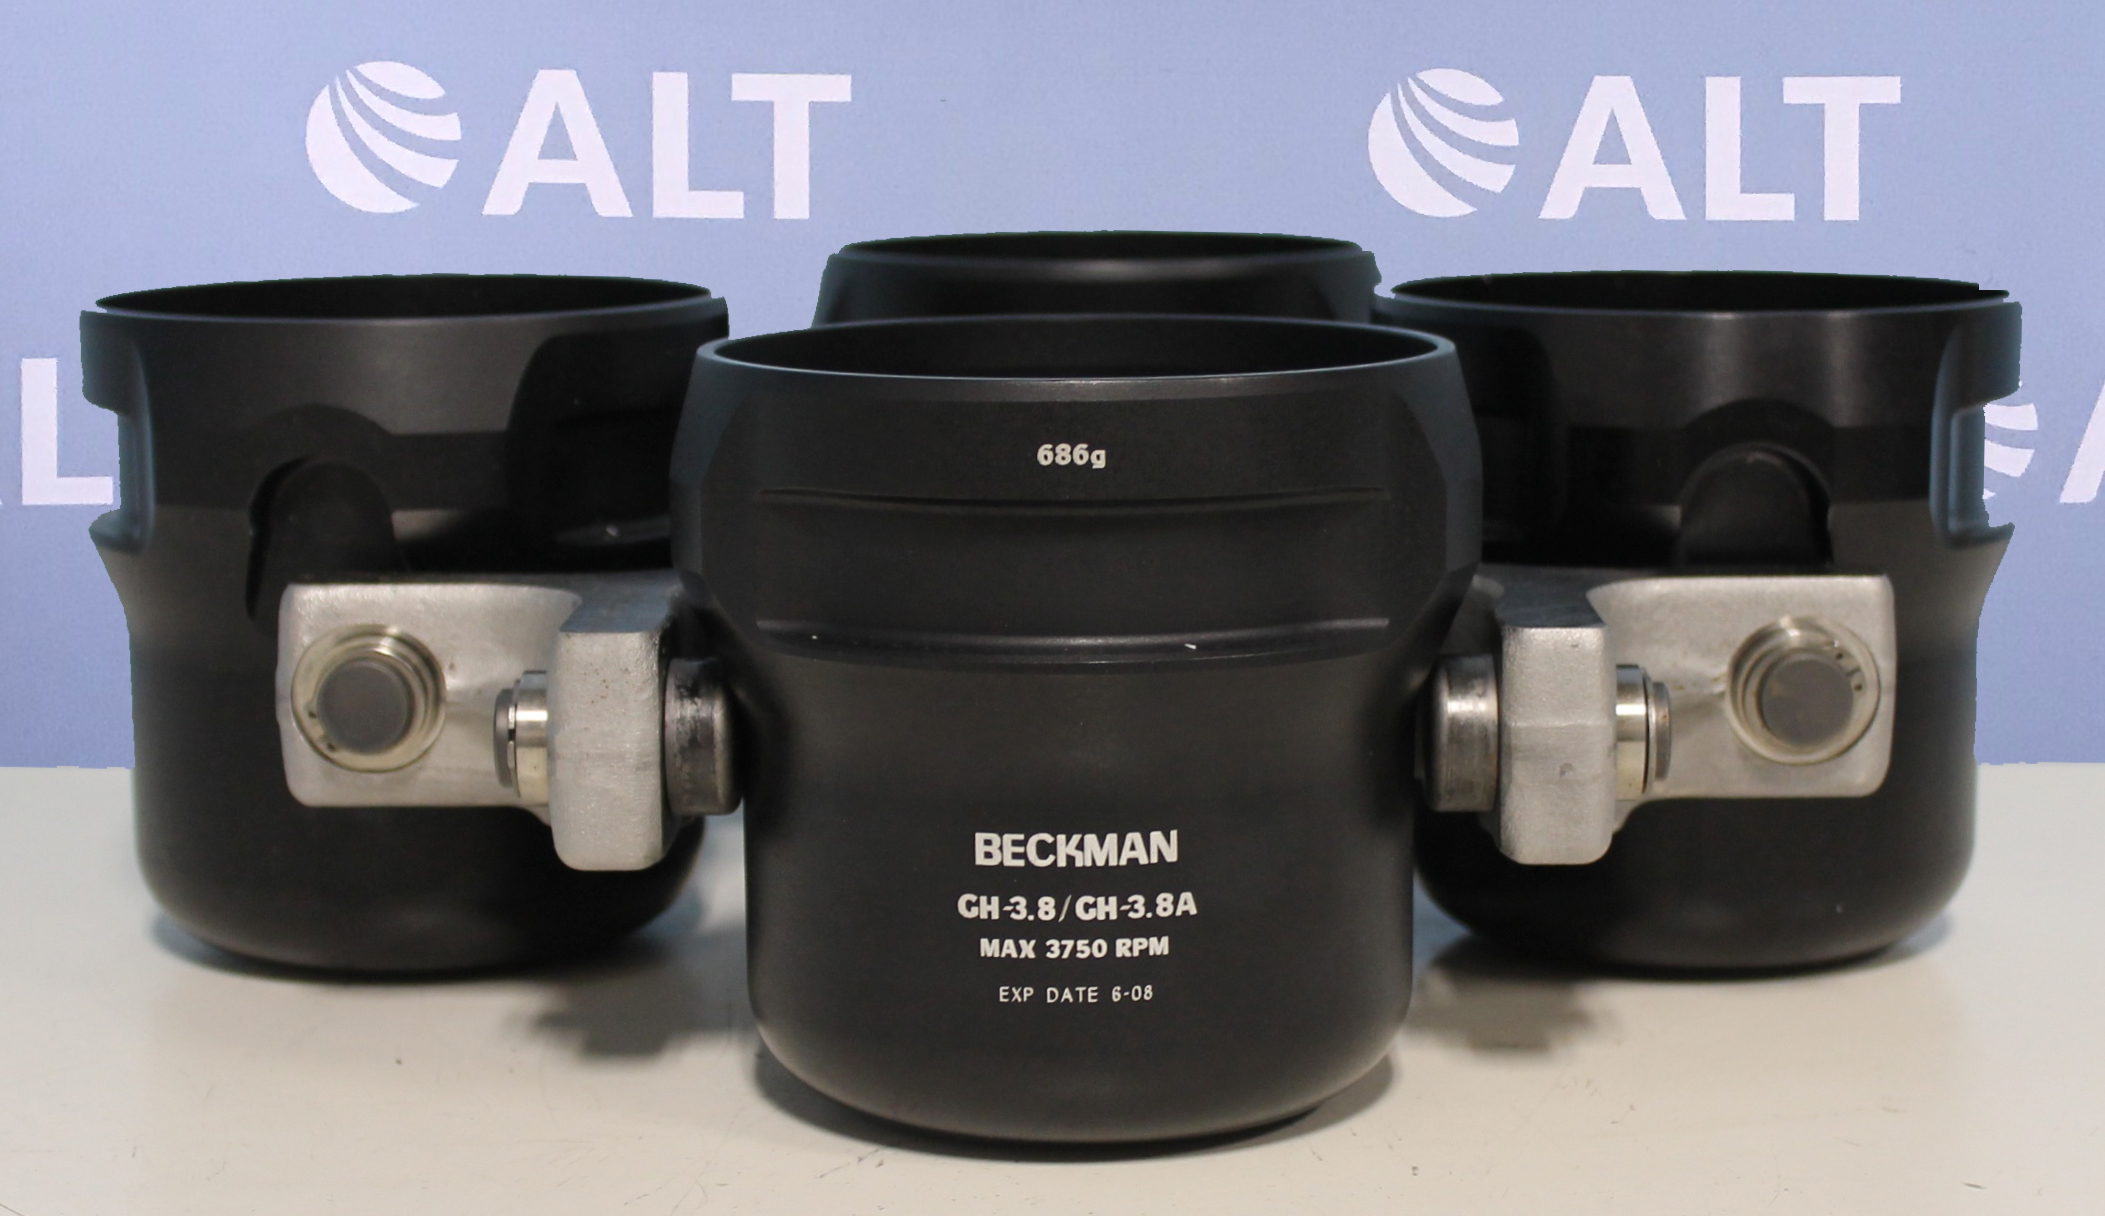 Beckman Coulter GH-3.8 Swinging Bucket Rotor with 4 Buckets Image